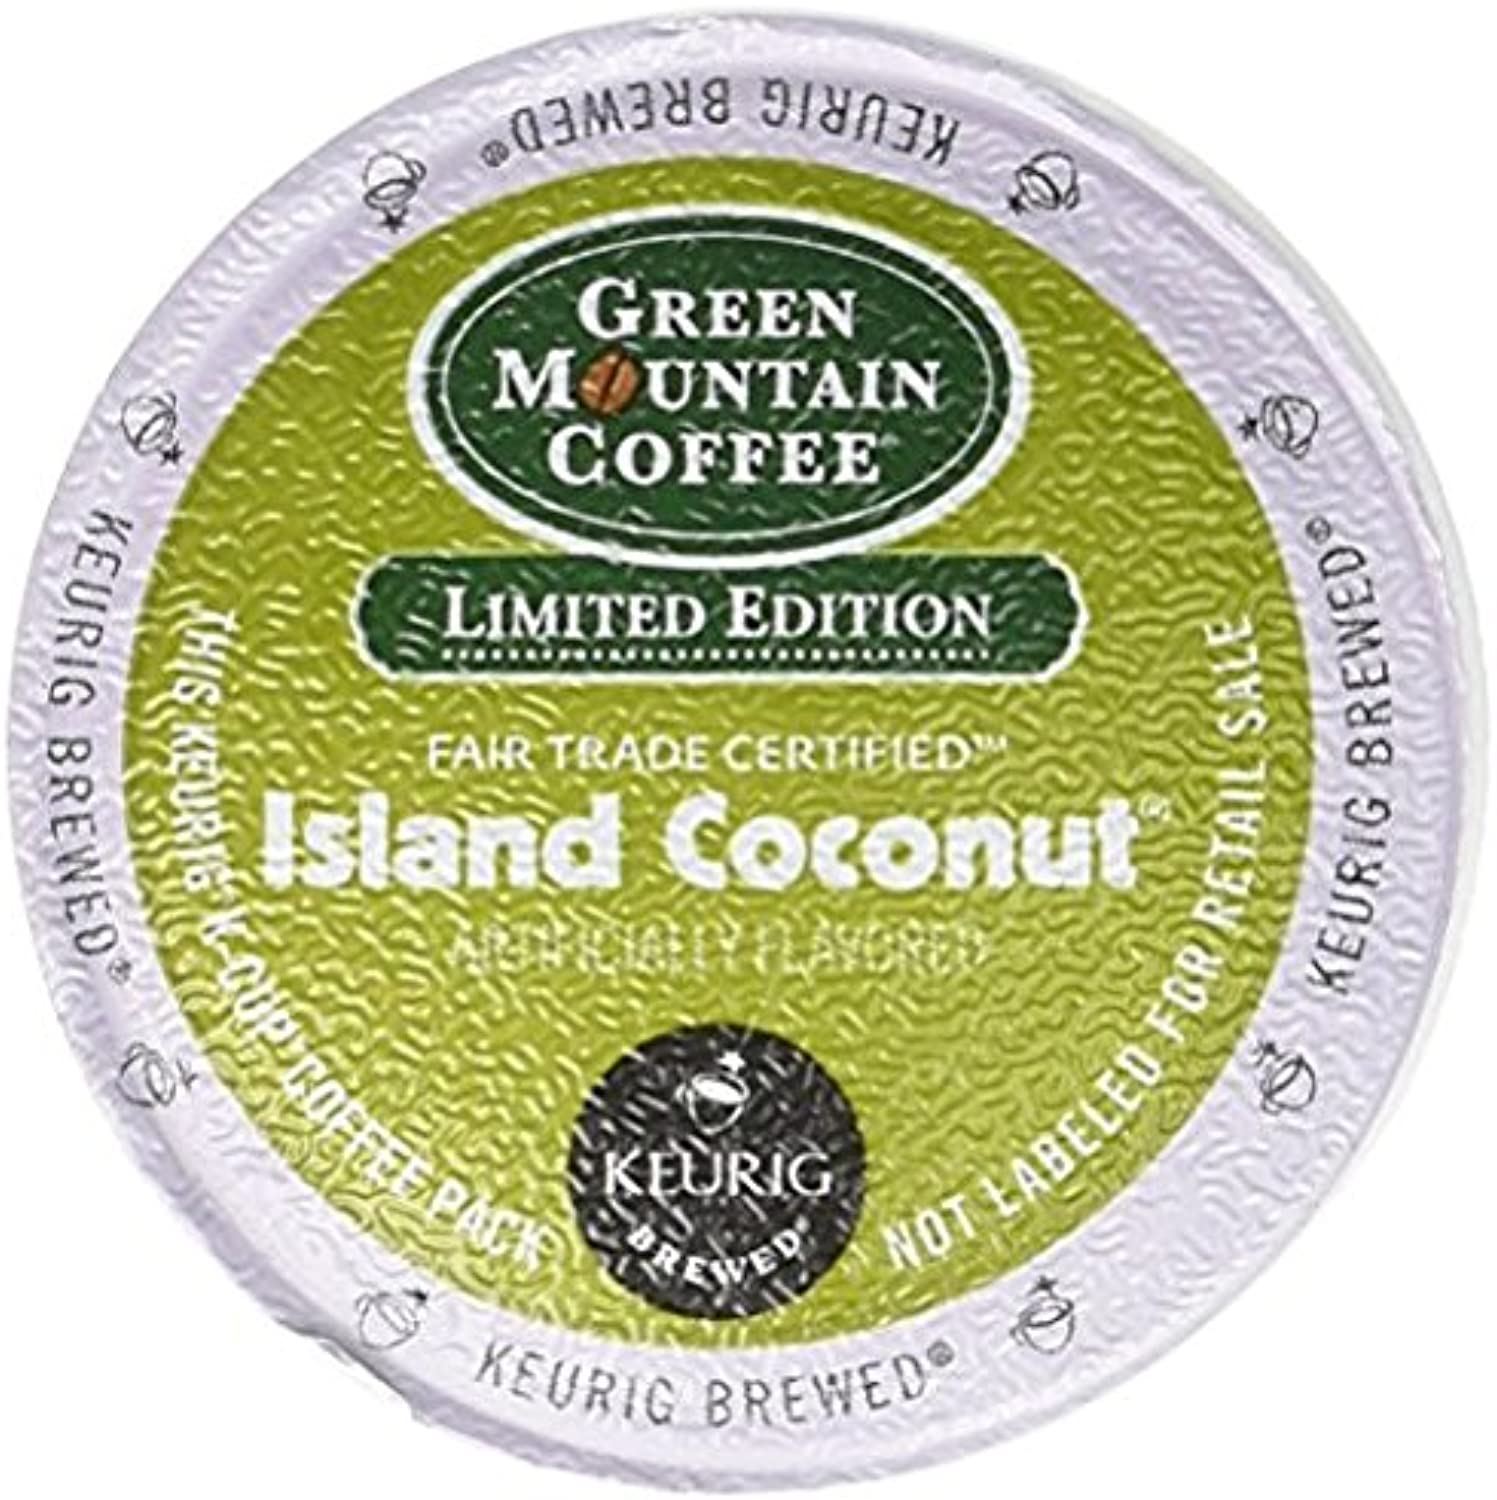 Green Mountain Coconut Island Blend, Single Serve Coffee K-Cups, 48-Count For Brewers